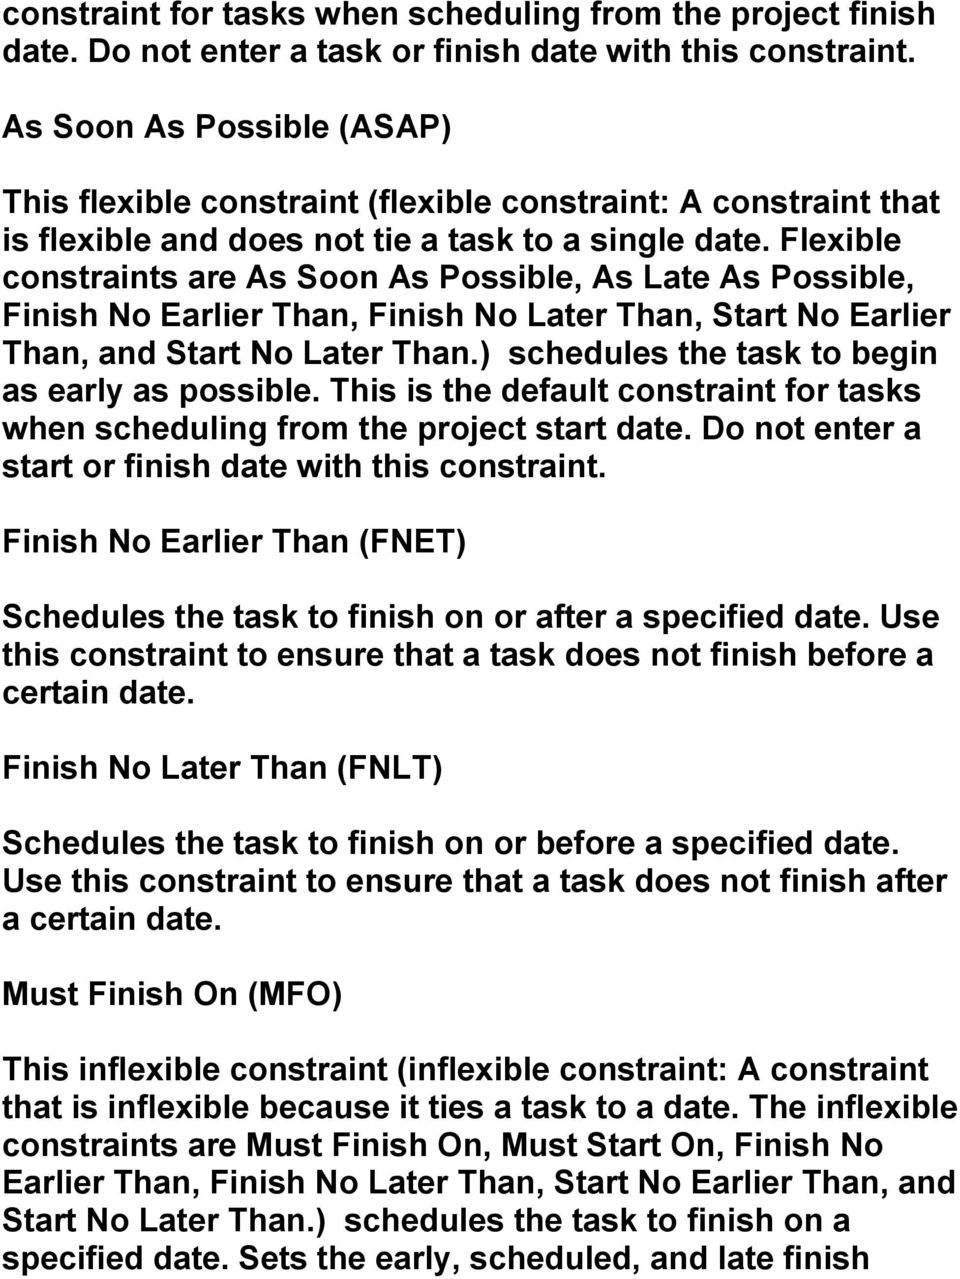 Flexible constraints are As Soon As Possible, As Late As Possible, Finish No Earlier Than, Finish No Later Than, Start No Earlier Than, and Start No Later Than.